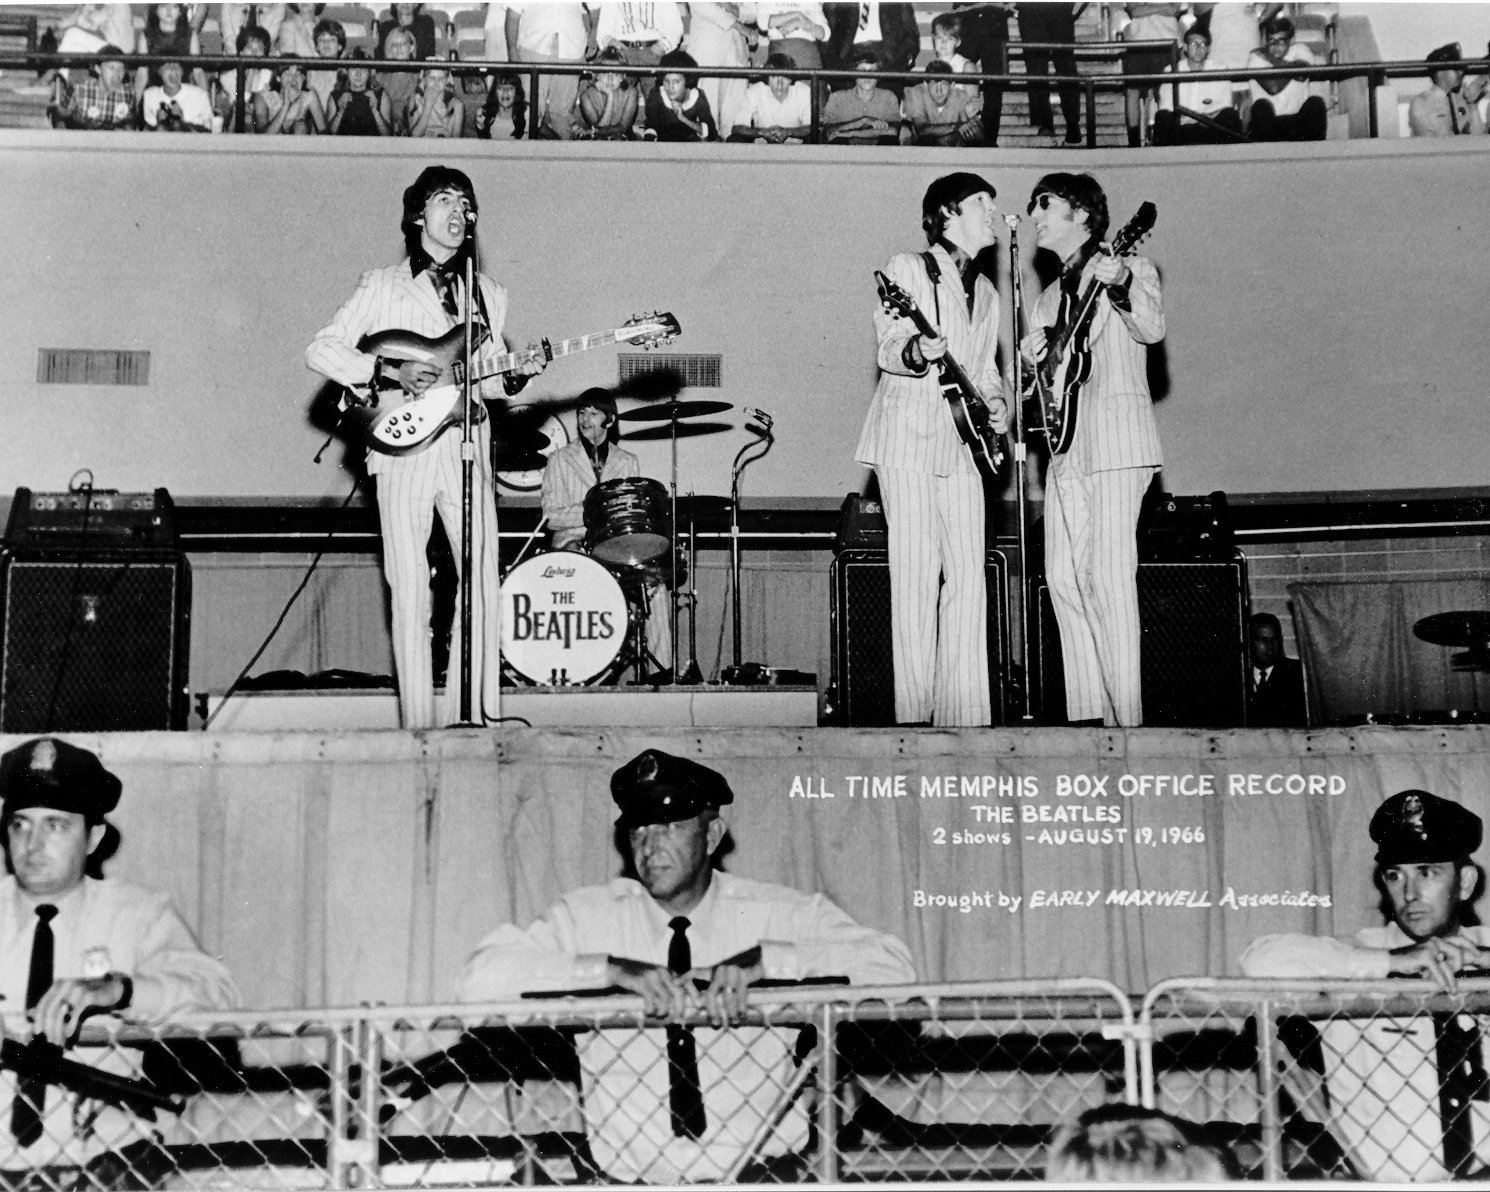 THE BEATLES AT MID-SOUTH COLISEUM IN MEMPHIS AUGUST 1966 - 8X10 PHOTO (XAA-252)